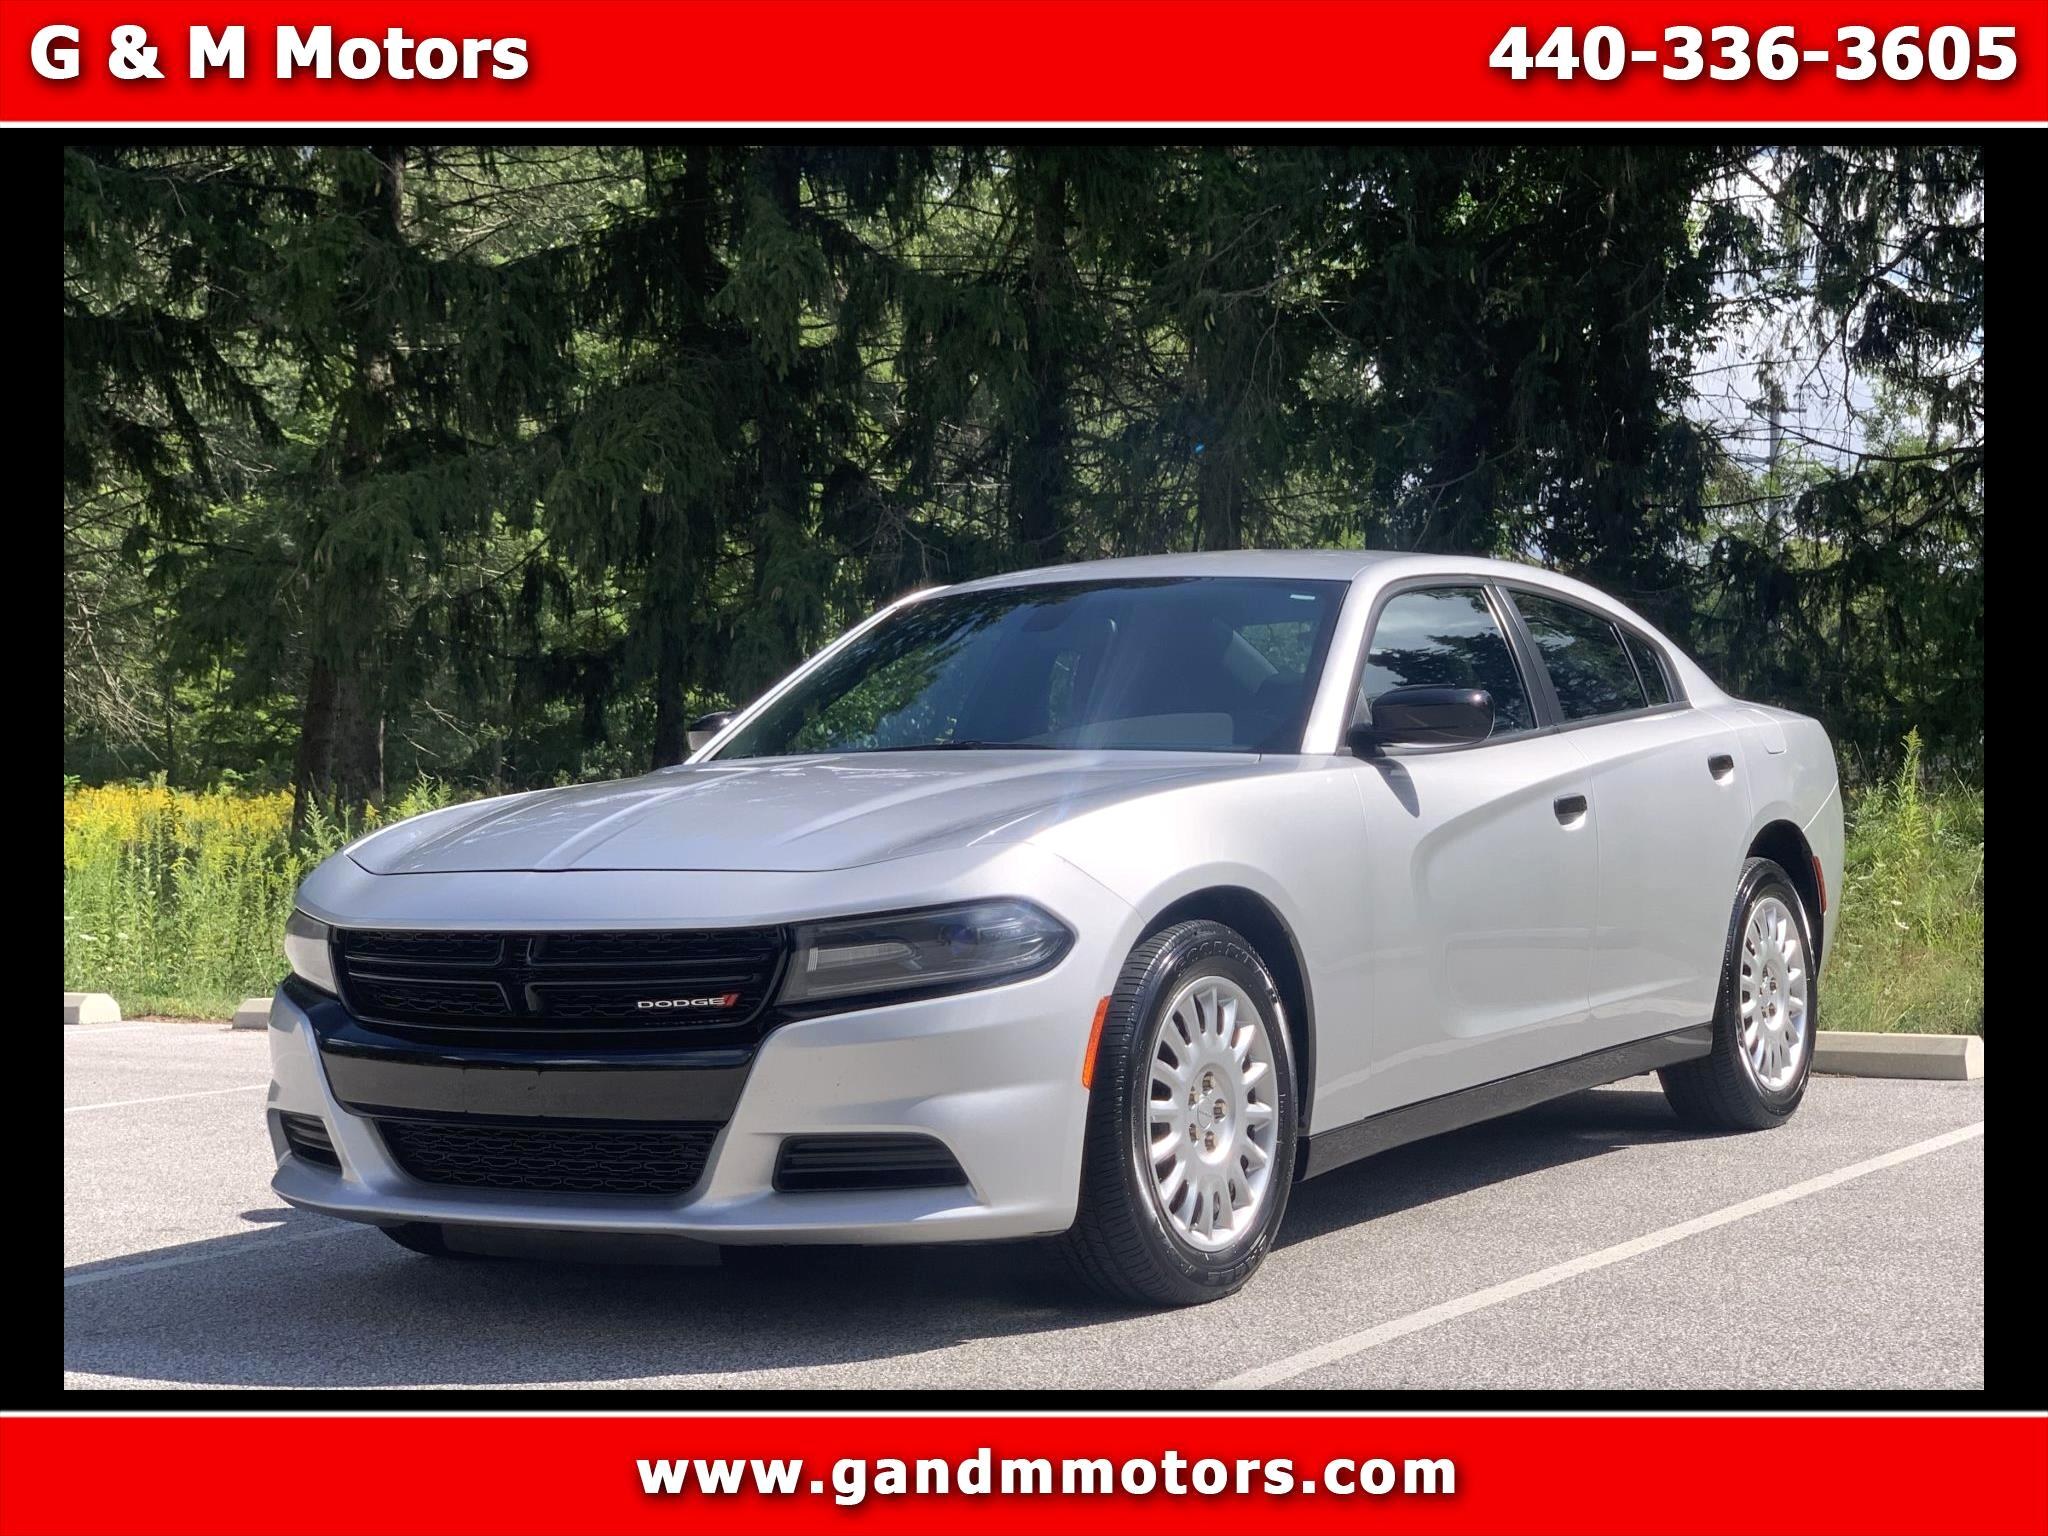 Dodge Charger Police AWD 2018